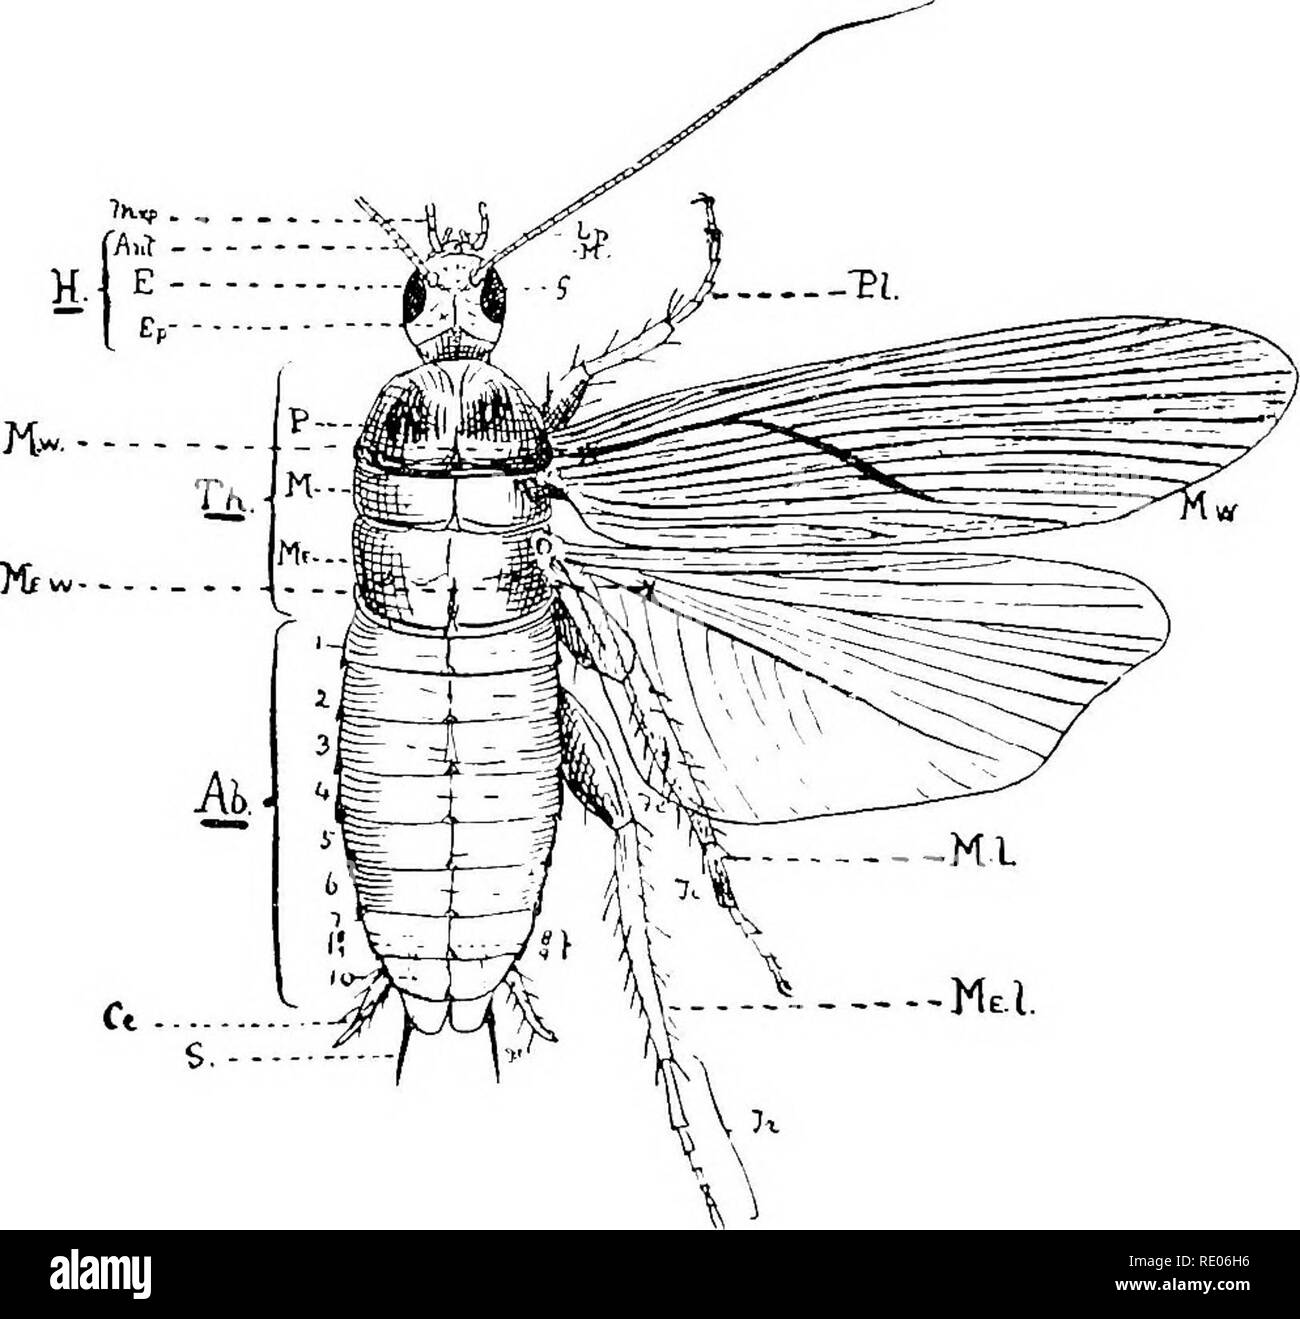 """. A text-book of agricultural zoology. Zoology, Agricultural; Zoology, Economic. 90 ANATOMY OF AN ARTHEOPOD. 32 A, c), a broad plate, which is followed by a smaller plate united to the front of the clypeus, called the labrum or """"upper lip"""" (L). The plate on each side below and behind the eyes is called the gena or cheek ((?). Ocelli are absent in this type, other- wise they would be situated on the epicranium. The thorax. Fig. 31.—Structuric of an Akthropod (Periplancta ajnericana). B, head; Th, thorax; Ah, abdomen; Mxp, maxillary palps; Lp, labial palps; JIf, maxiUee; Ant, antennae  - Stock Image"""